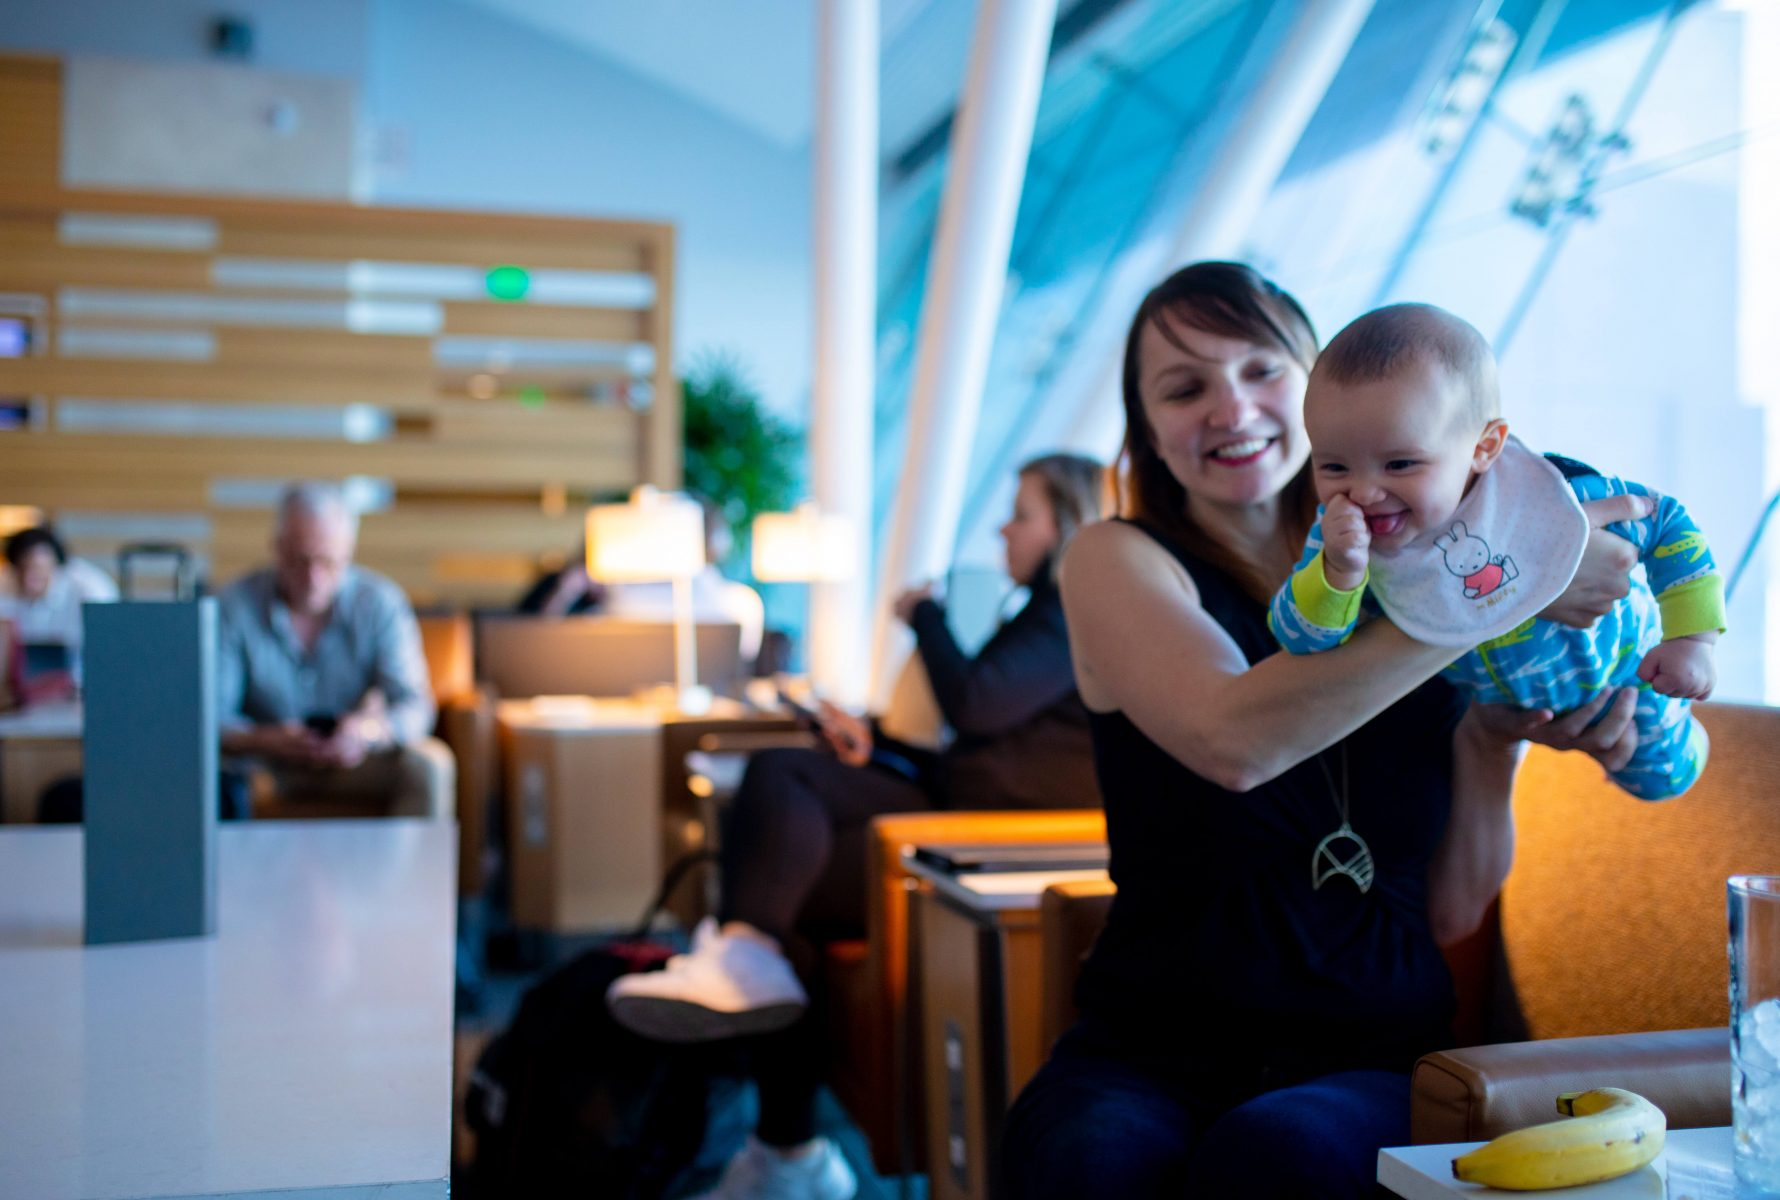 The Best Airline Lounges for Families With Kids — The Right Credit Card Gets You in Without Paying!